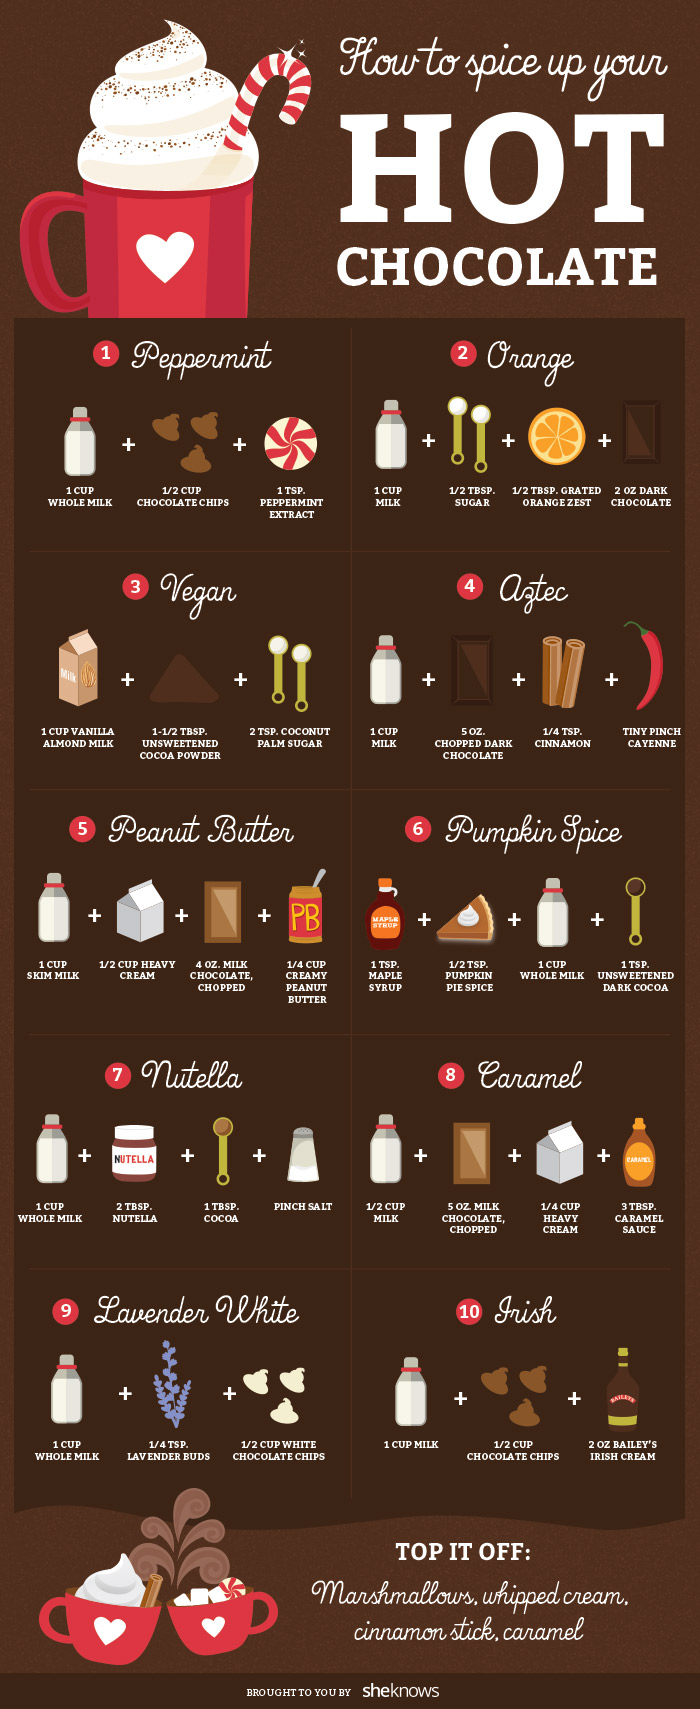 Every Way You Can Make Hot Chocolate | HuffPost